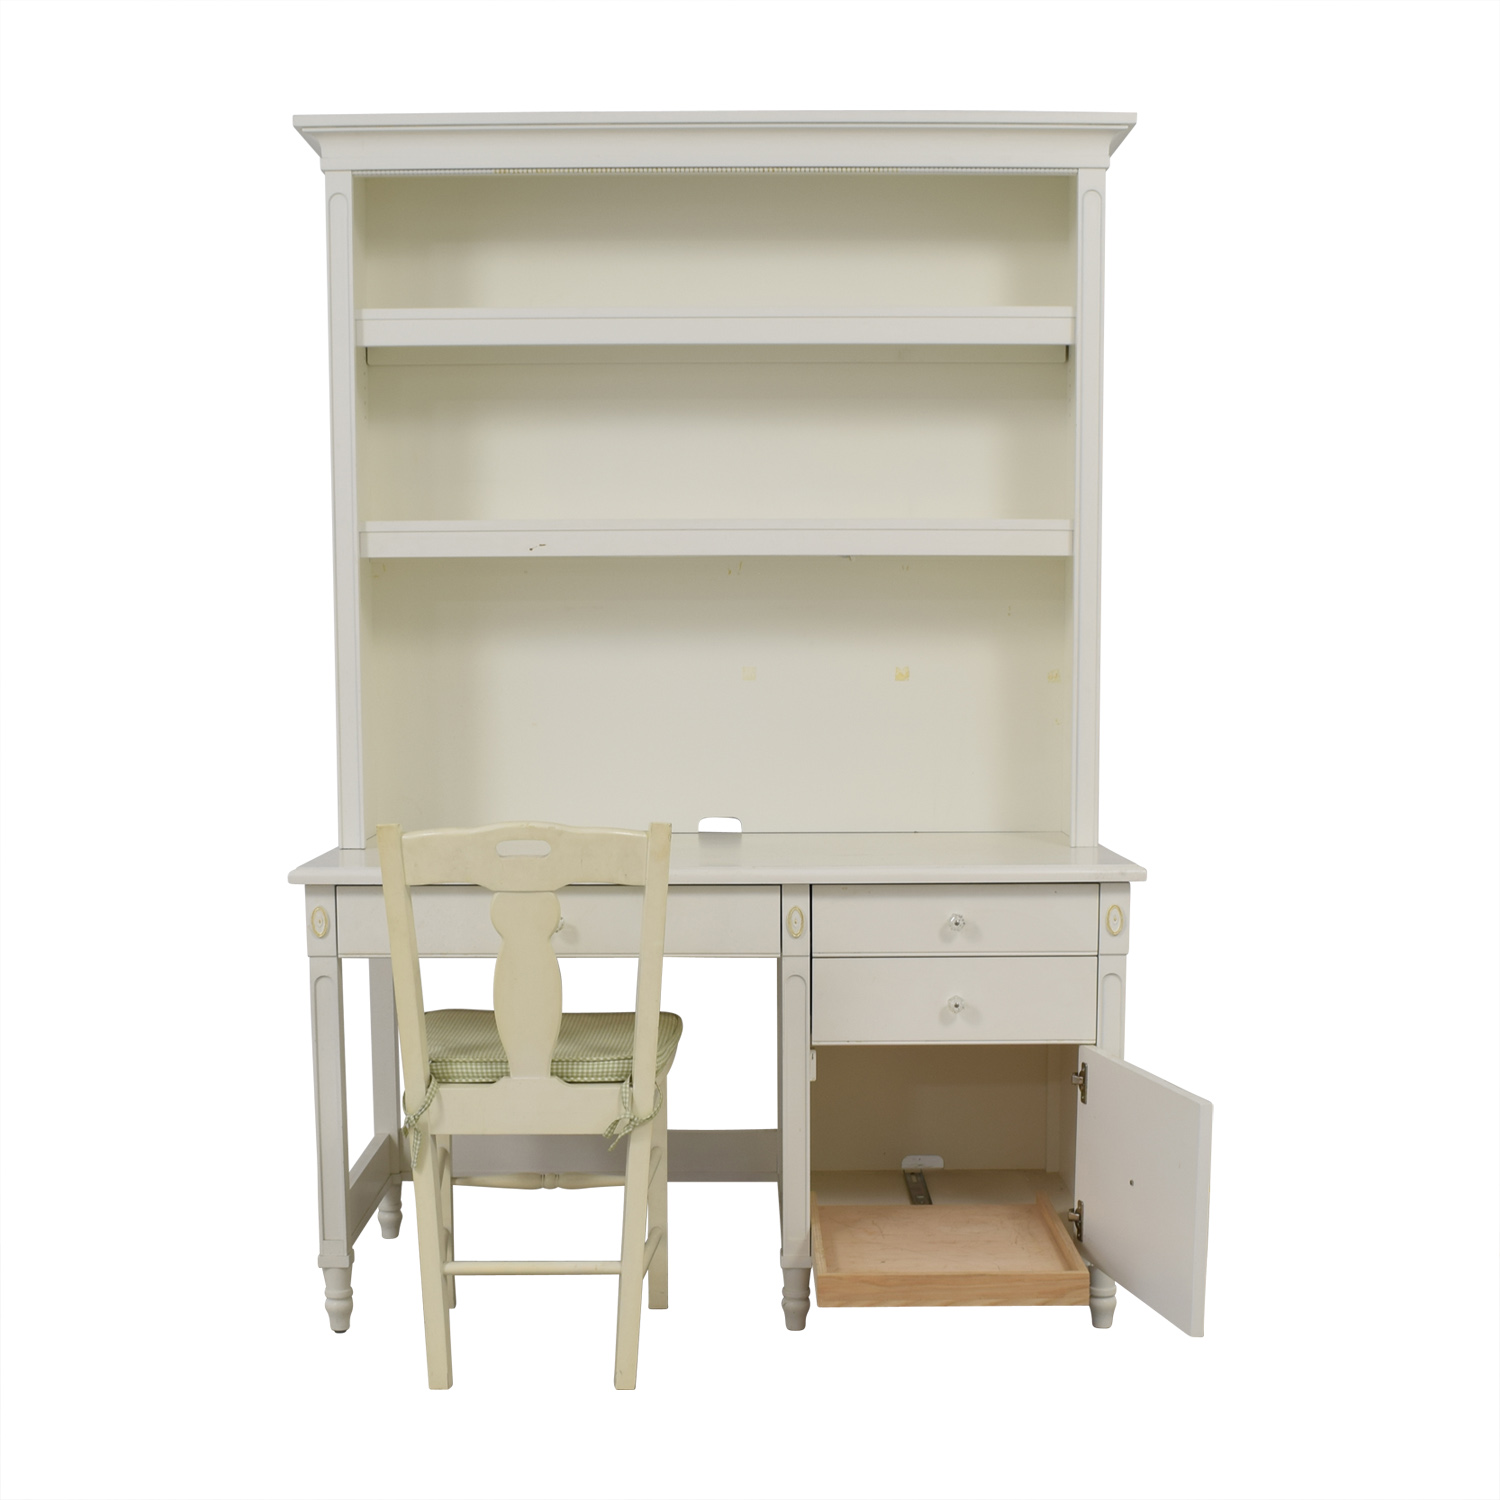 White Three-Drawer Wood Desk and Chair dimensions